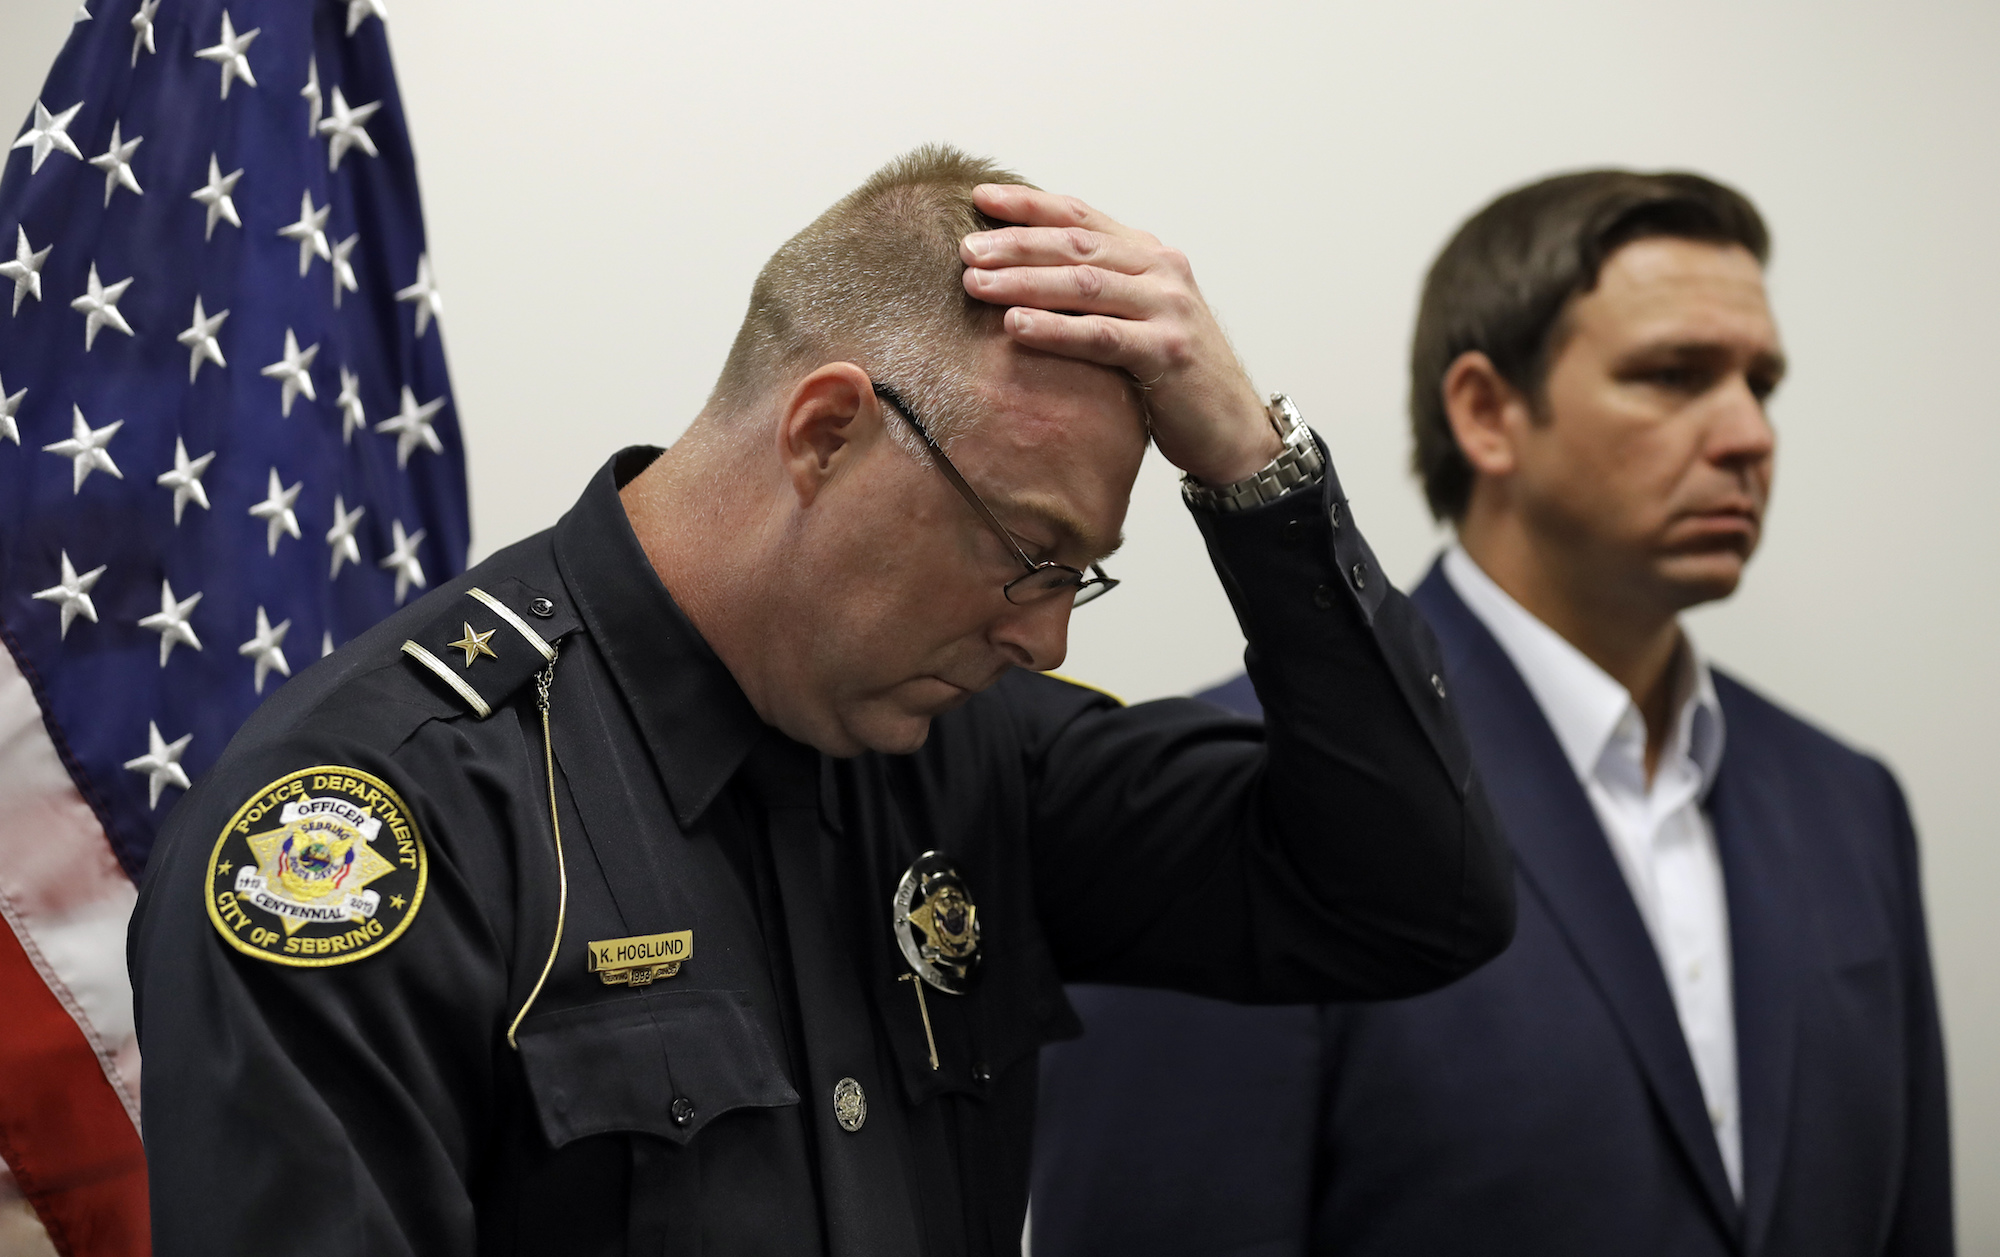 Sebring police chief and Florida governor at press conference